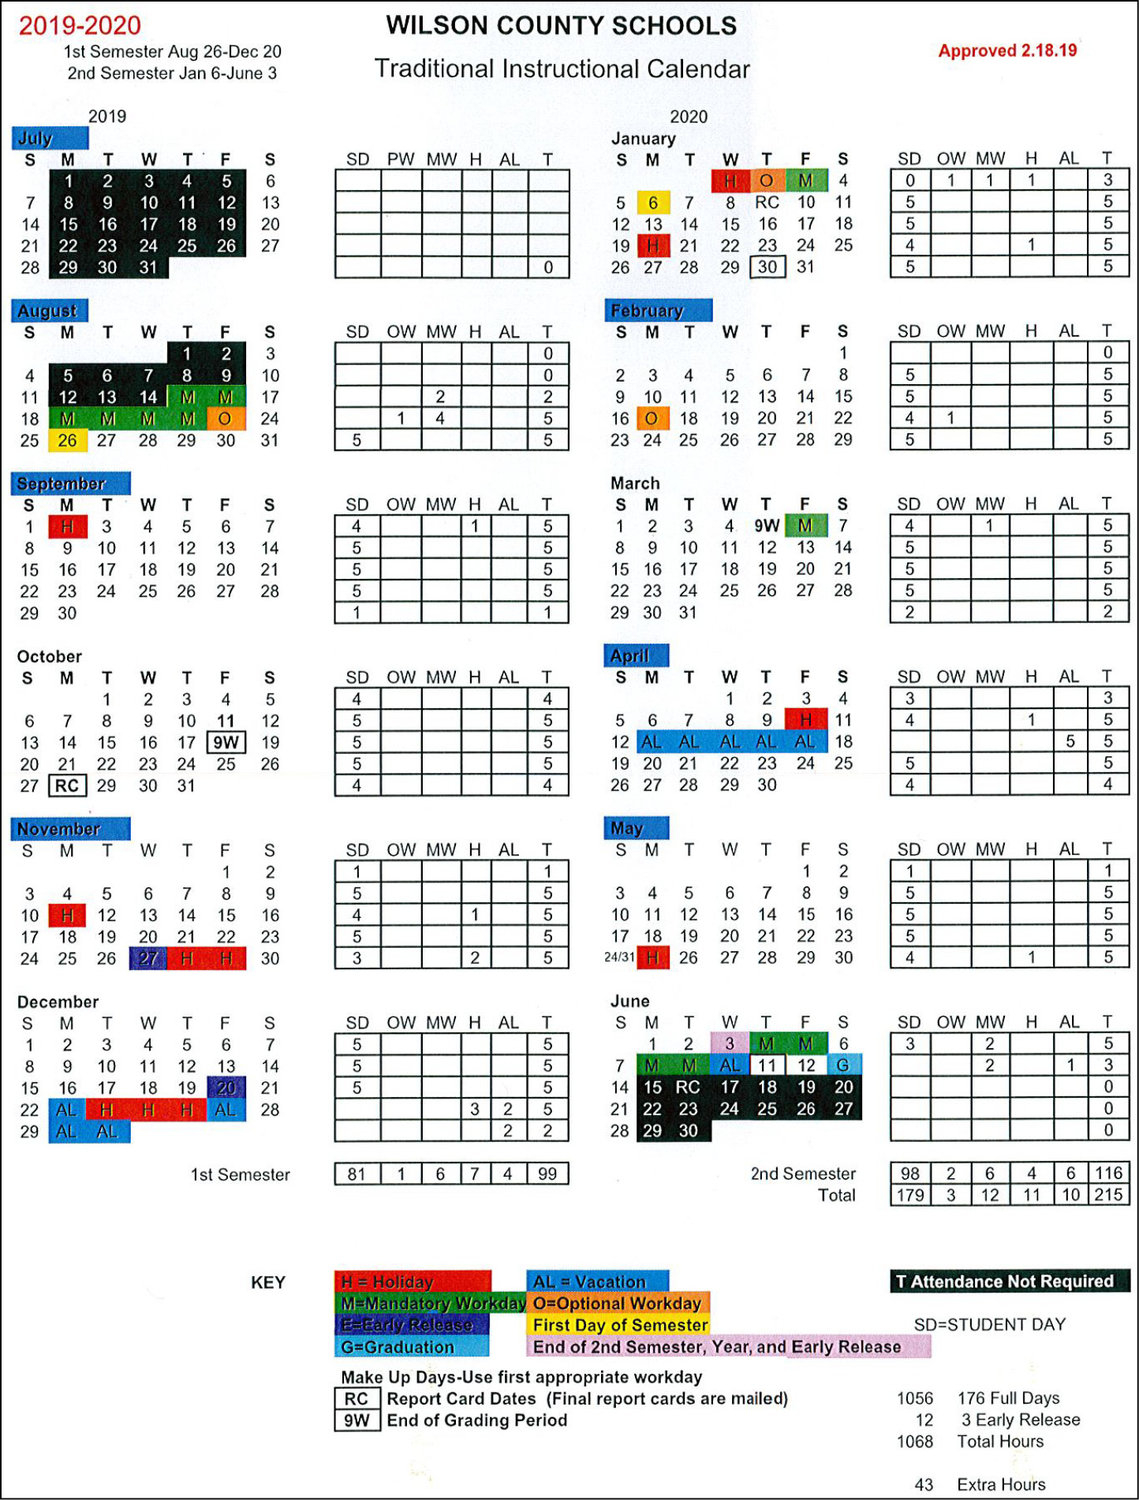 School Board Approves 2019-20 Calendars | The Wilson Times throughout Wilson Nc Schoold Calendar